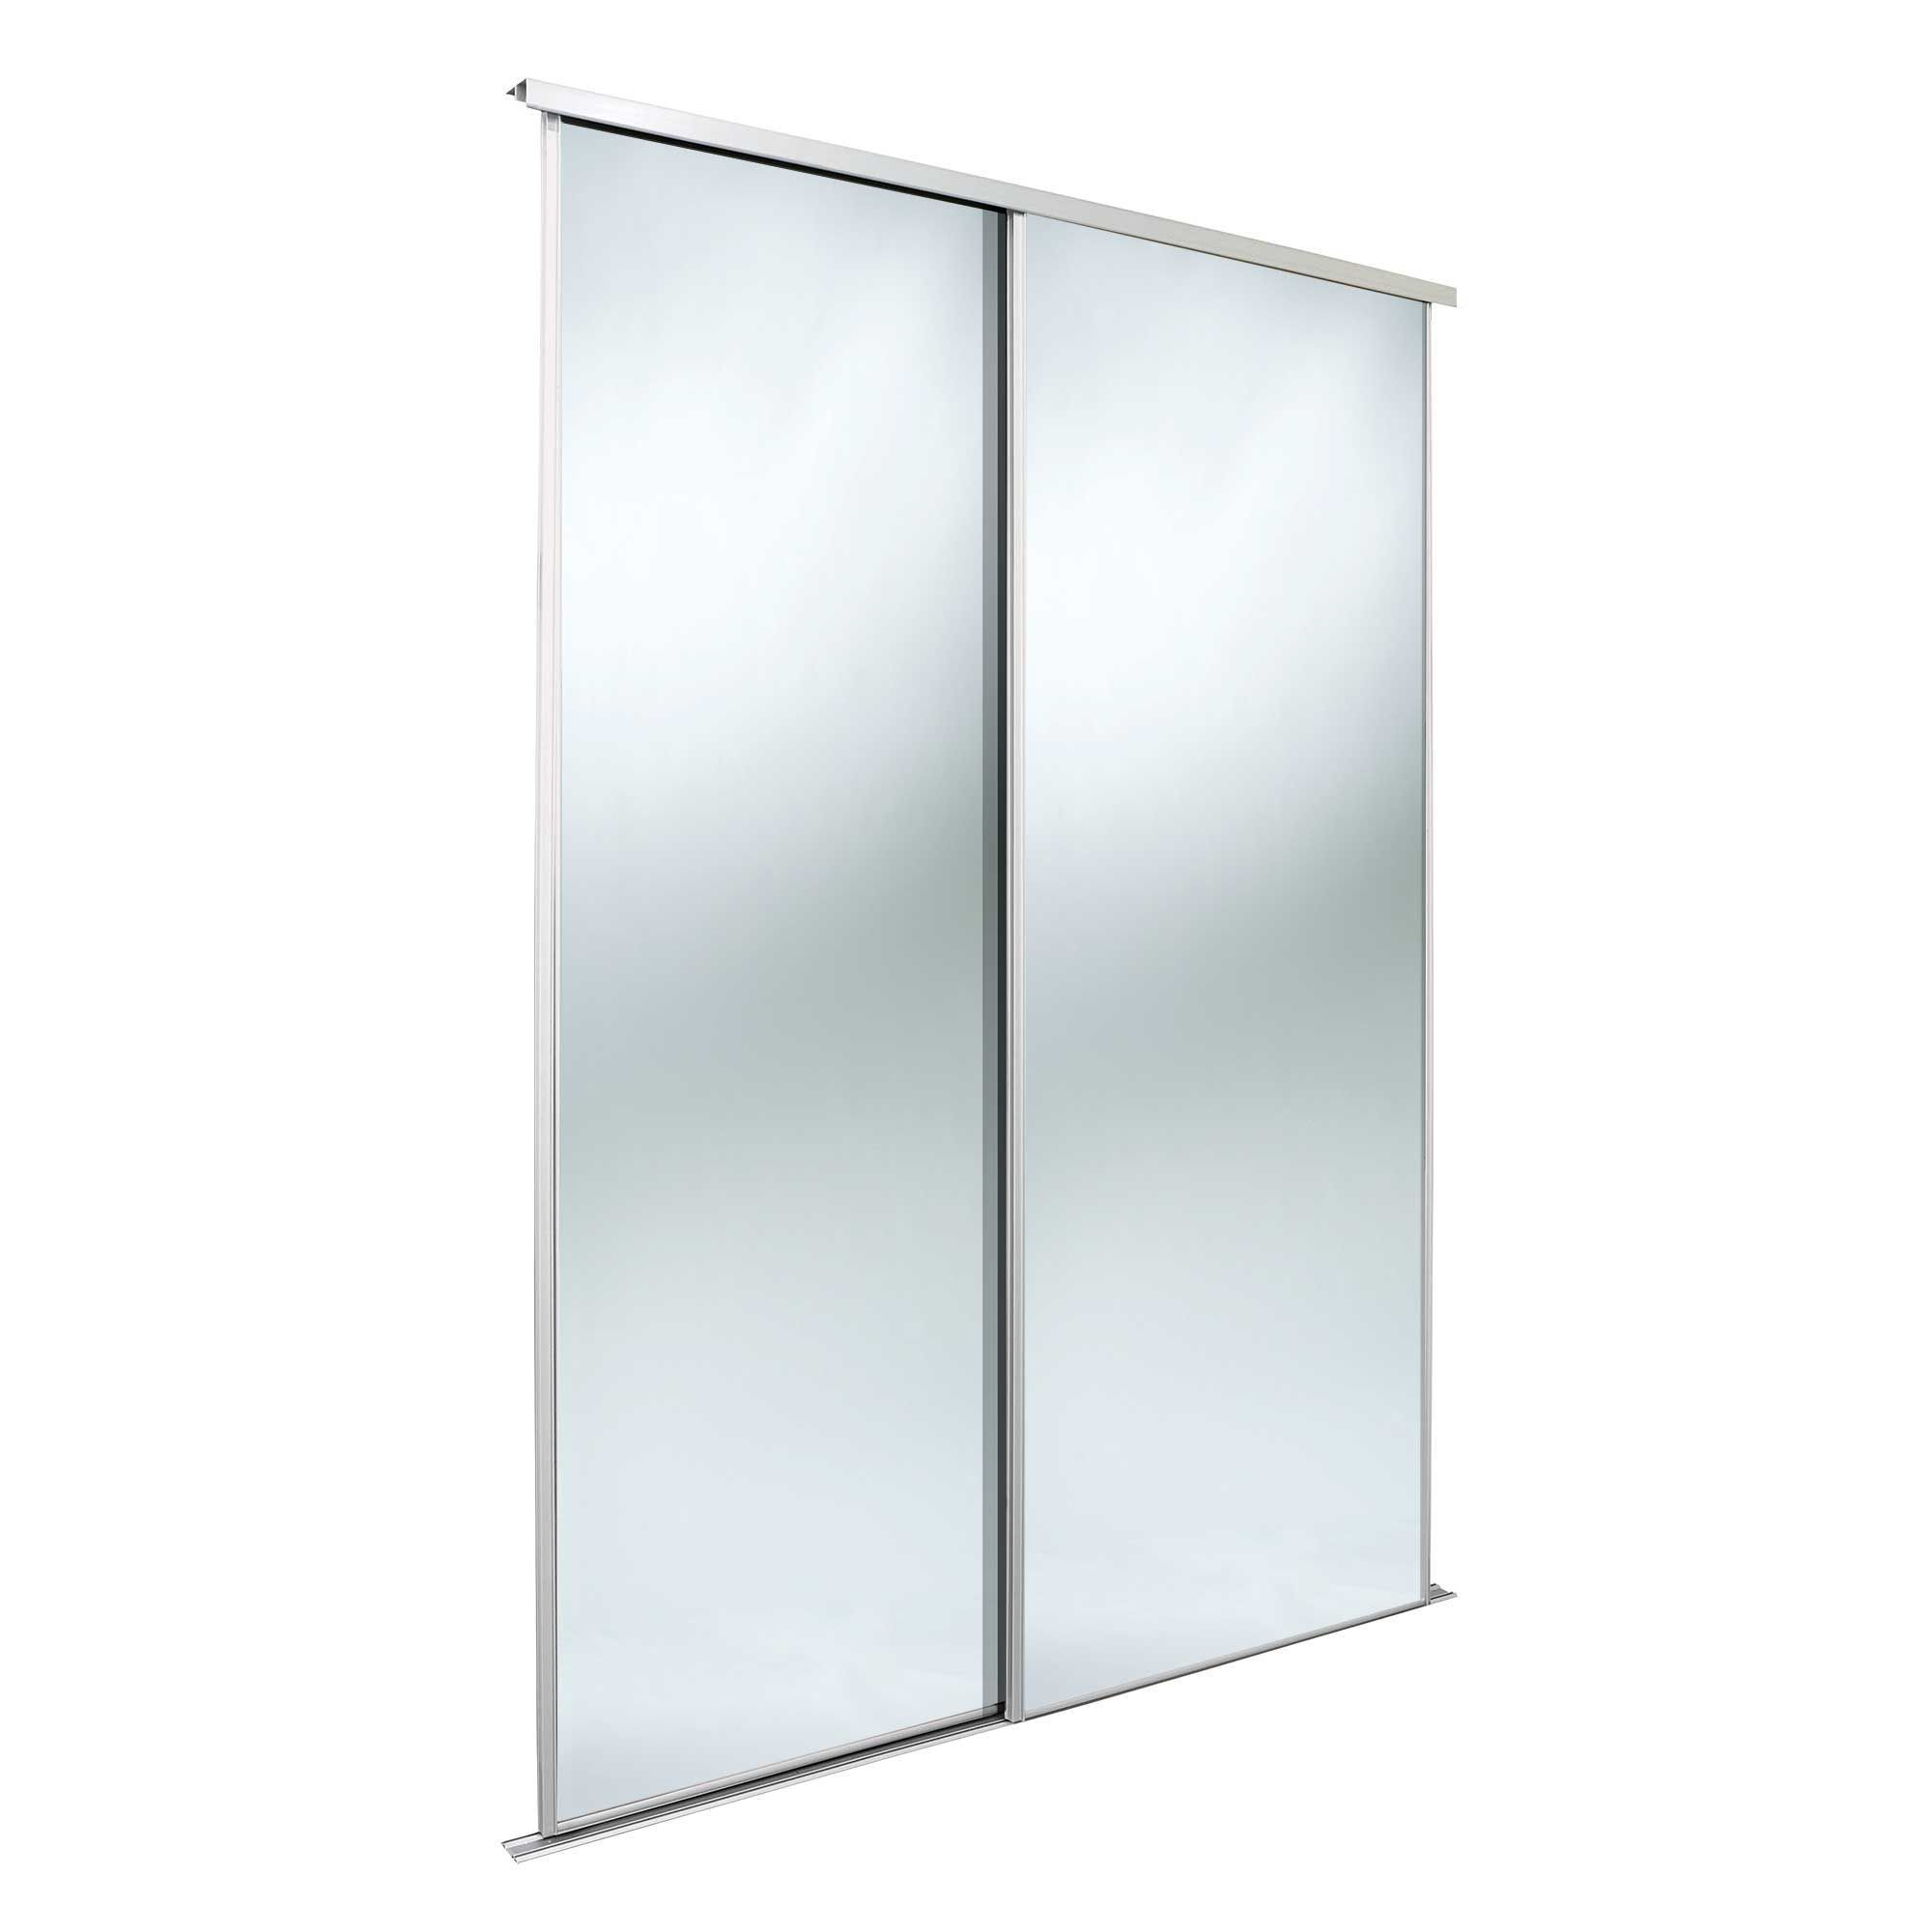 Full length mirror sliding wardrobe door h 2220 mm w 914 for Sliding mirror doors